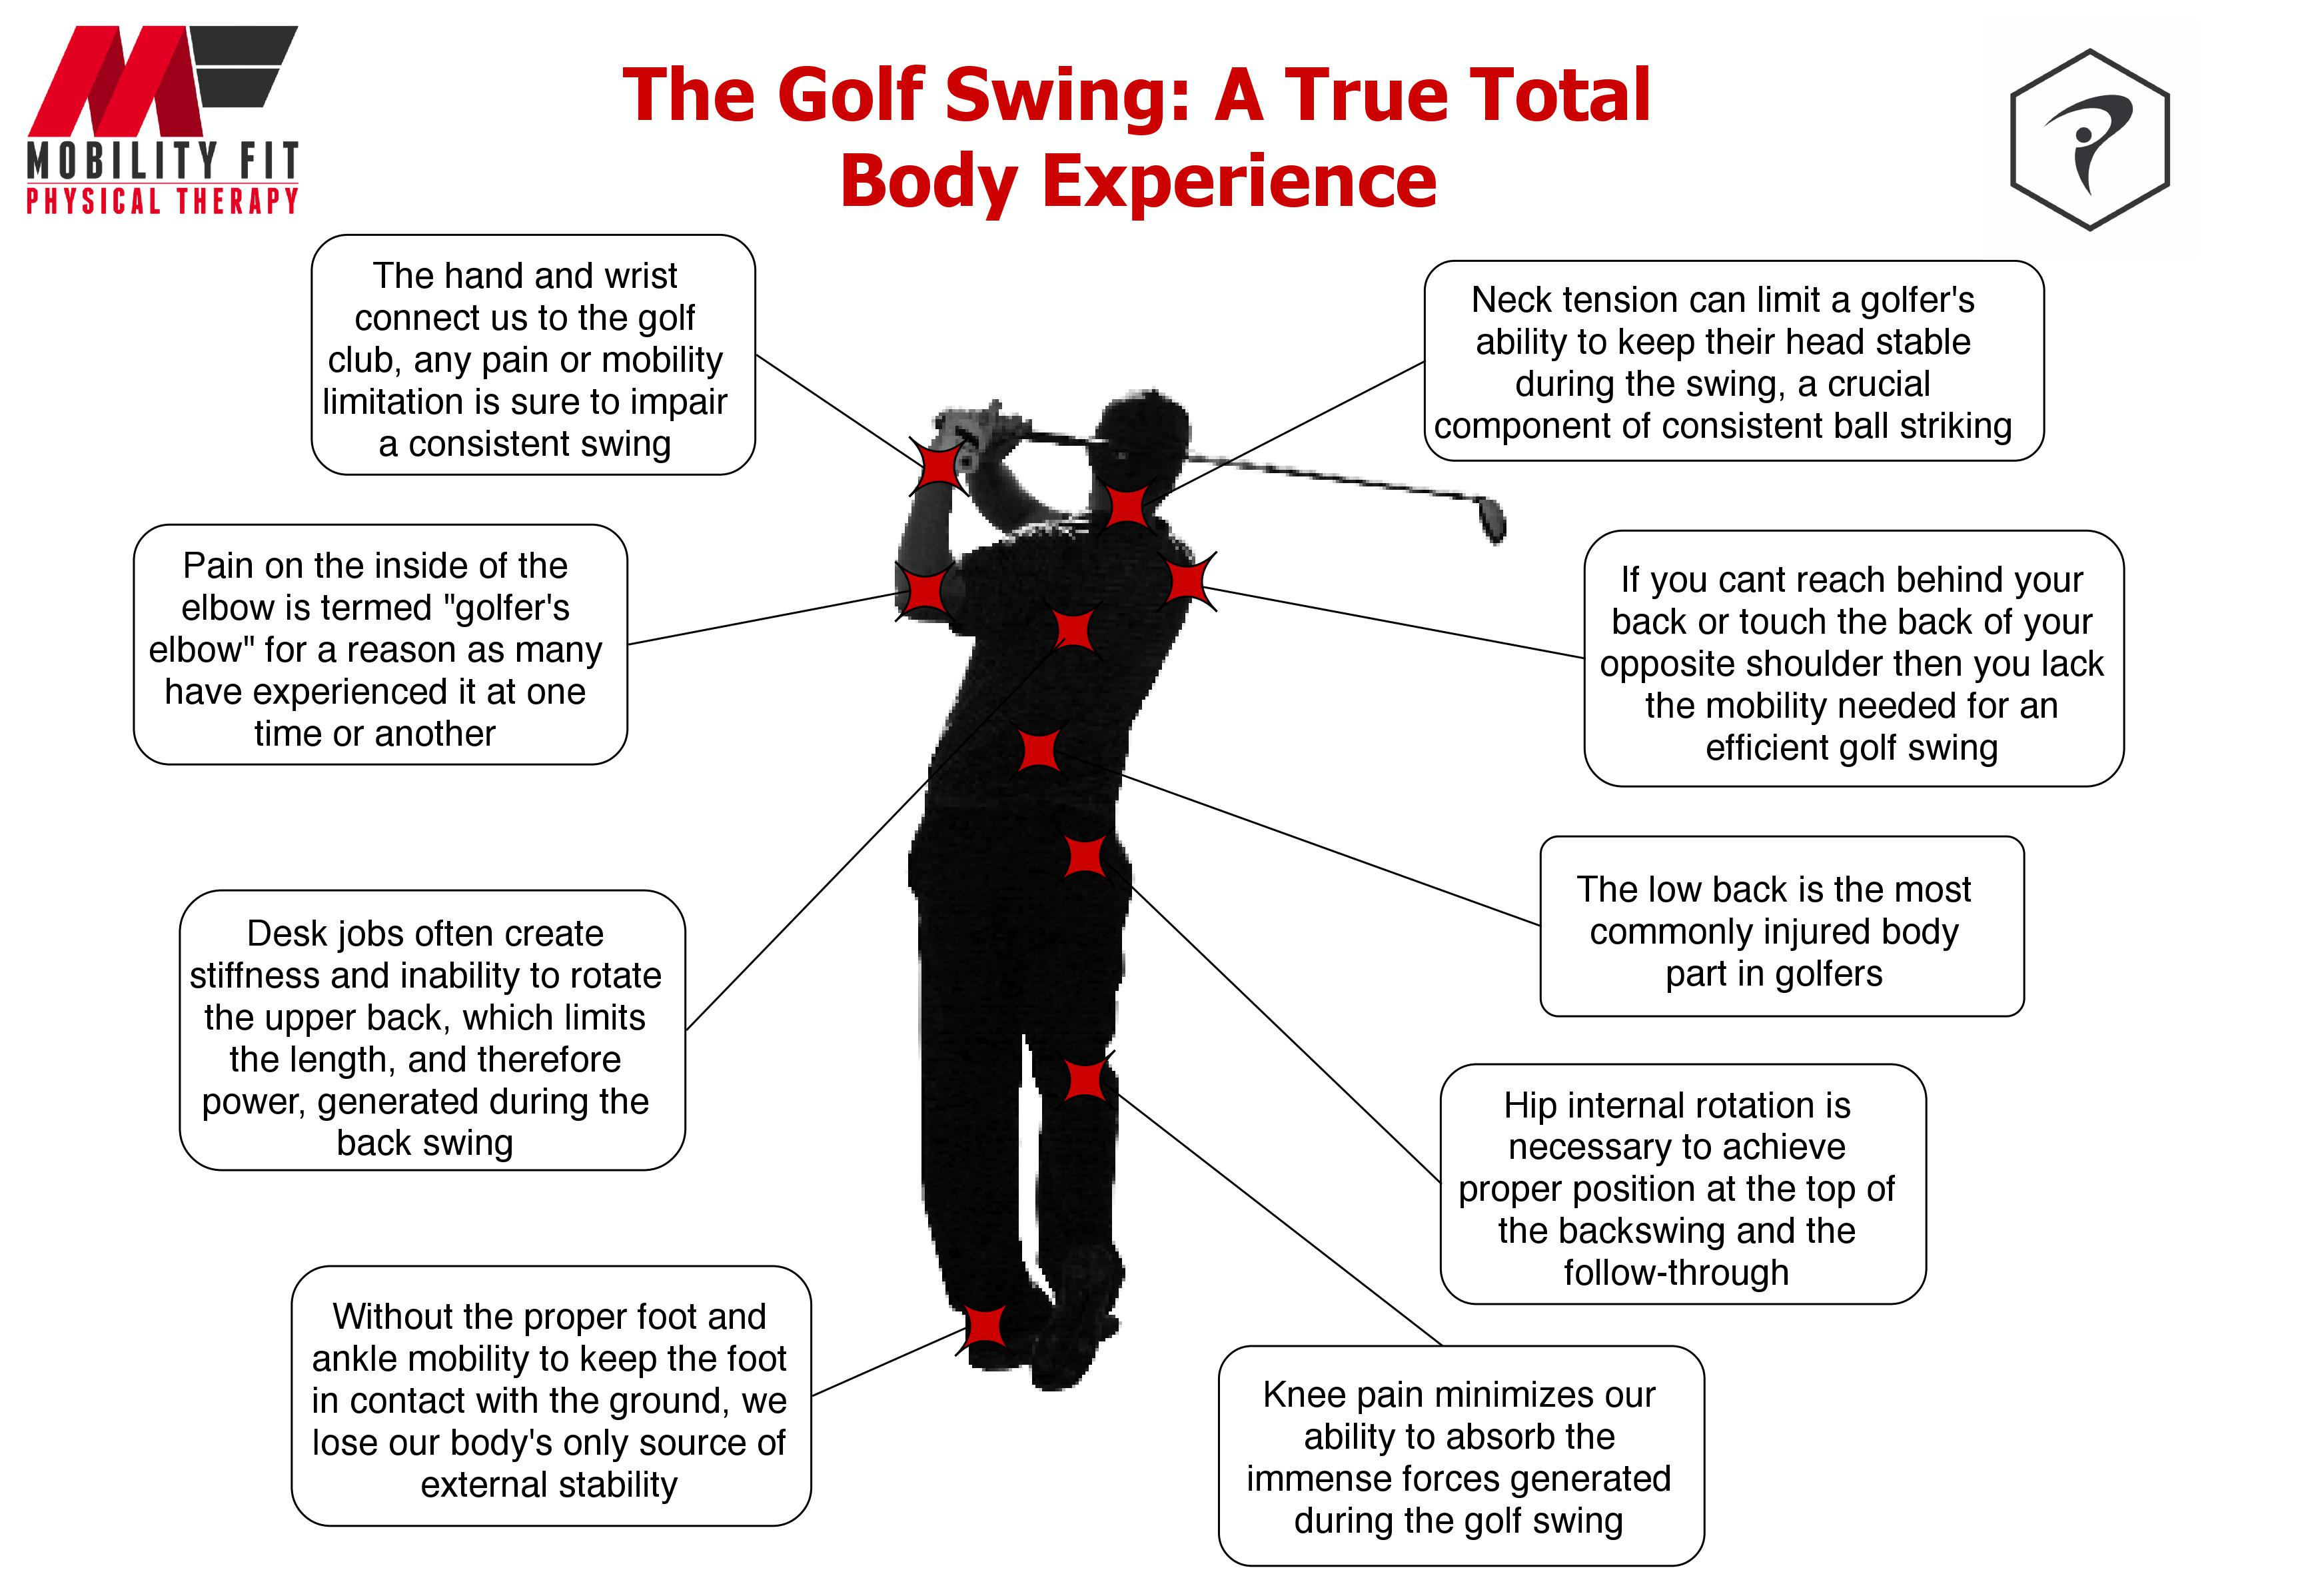 The Golf Swing – A True Total Body Experience | Mobility Fit